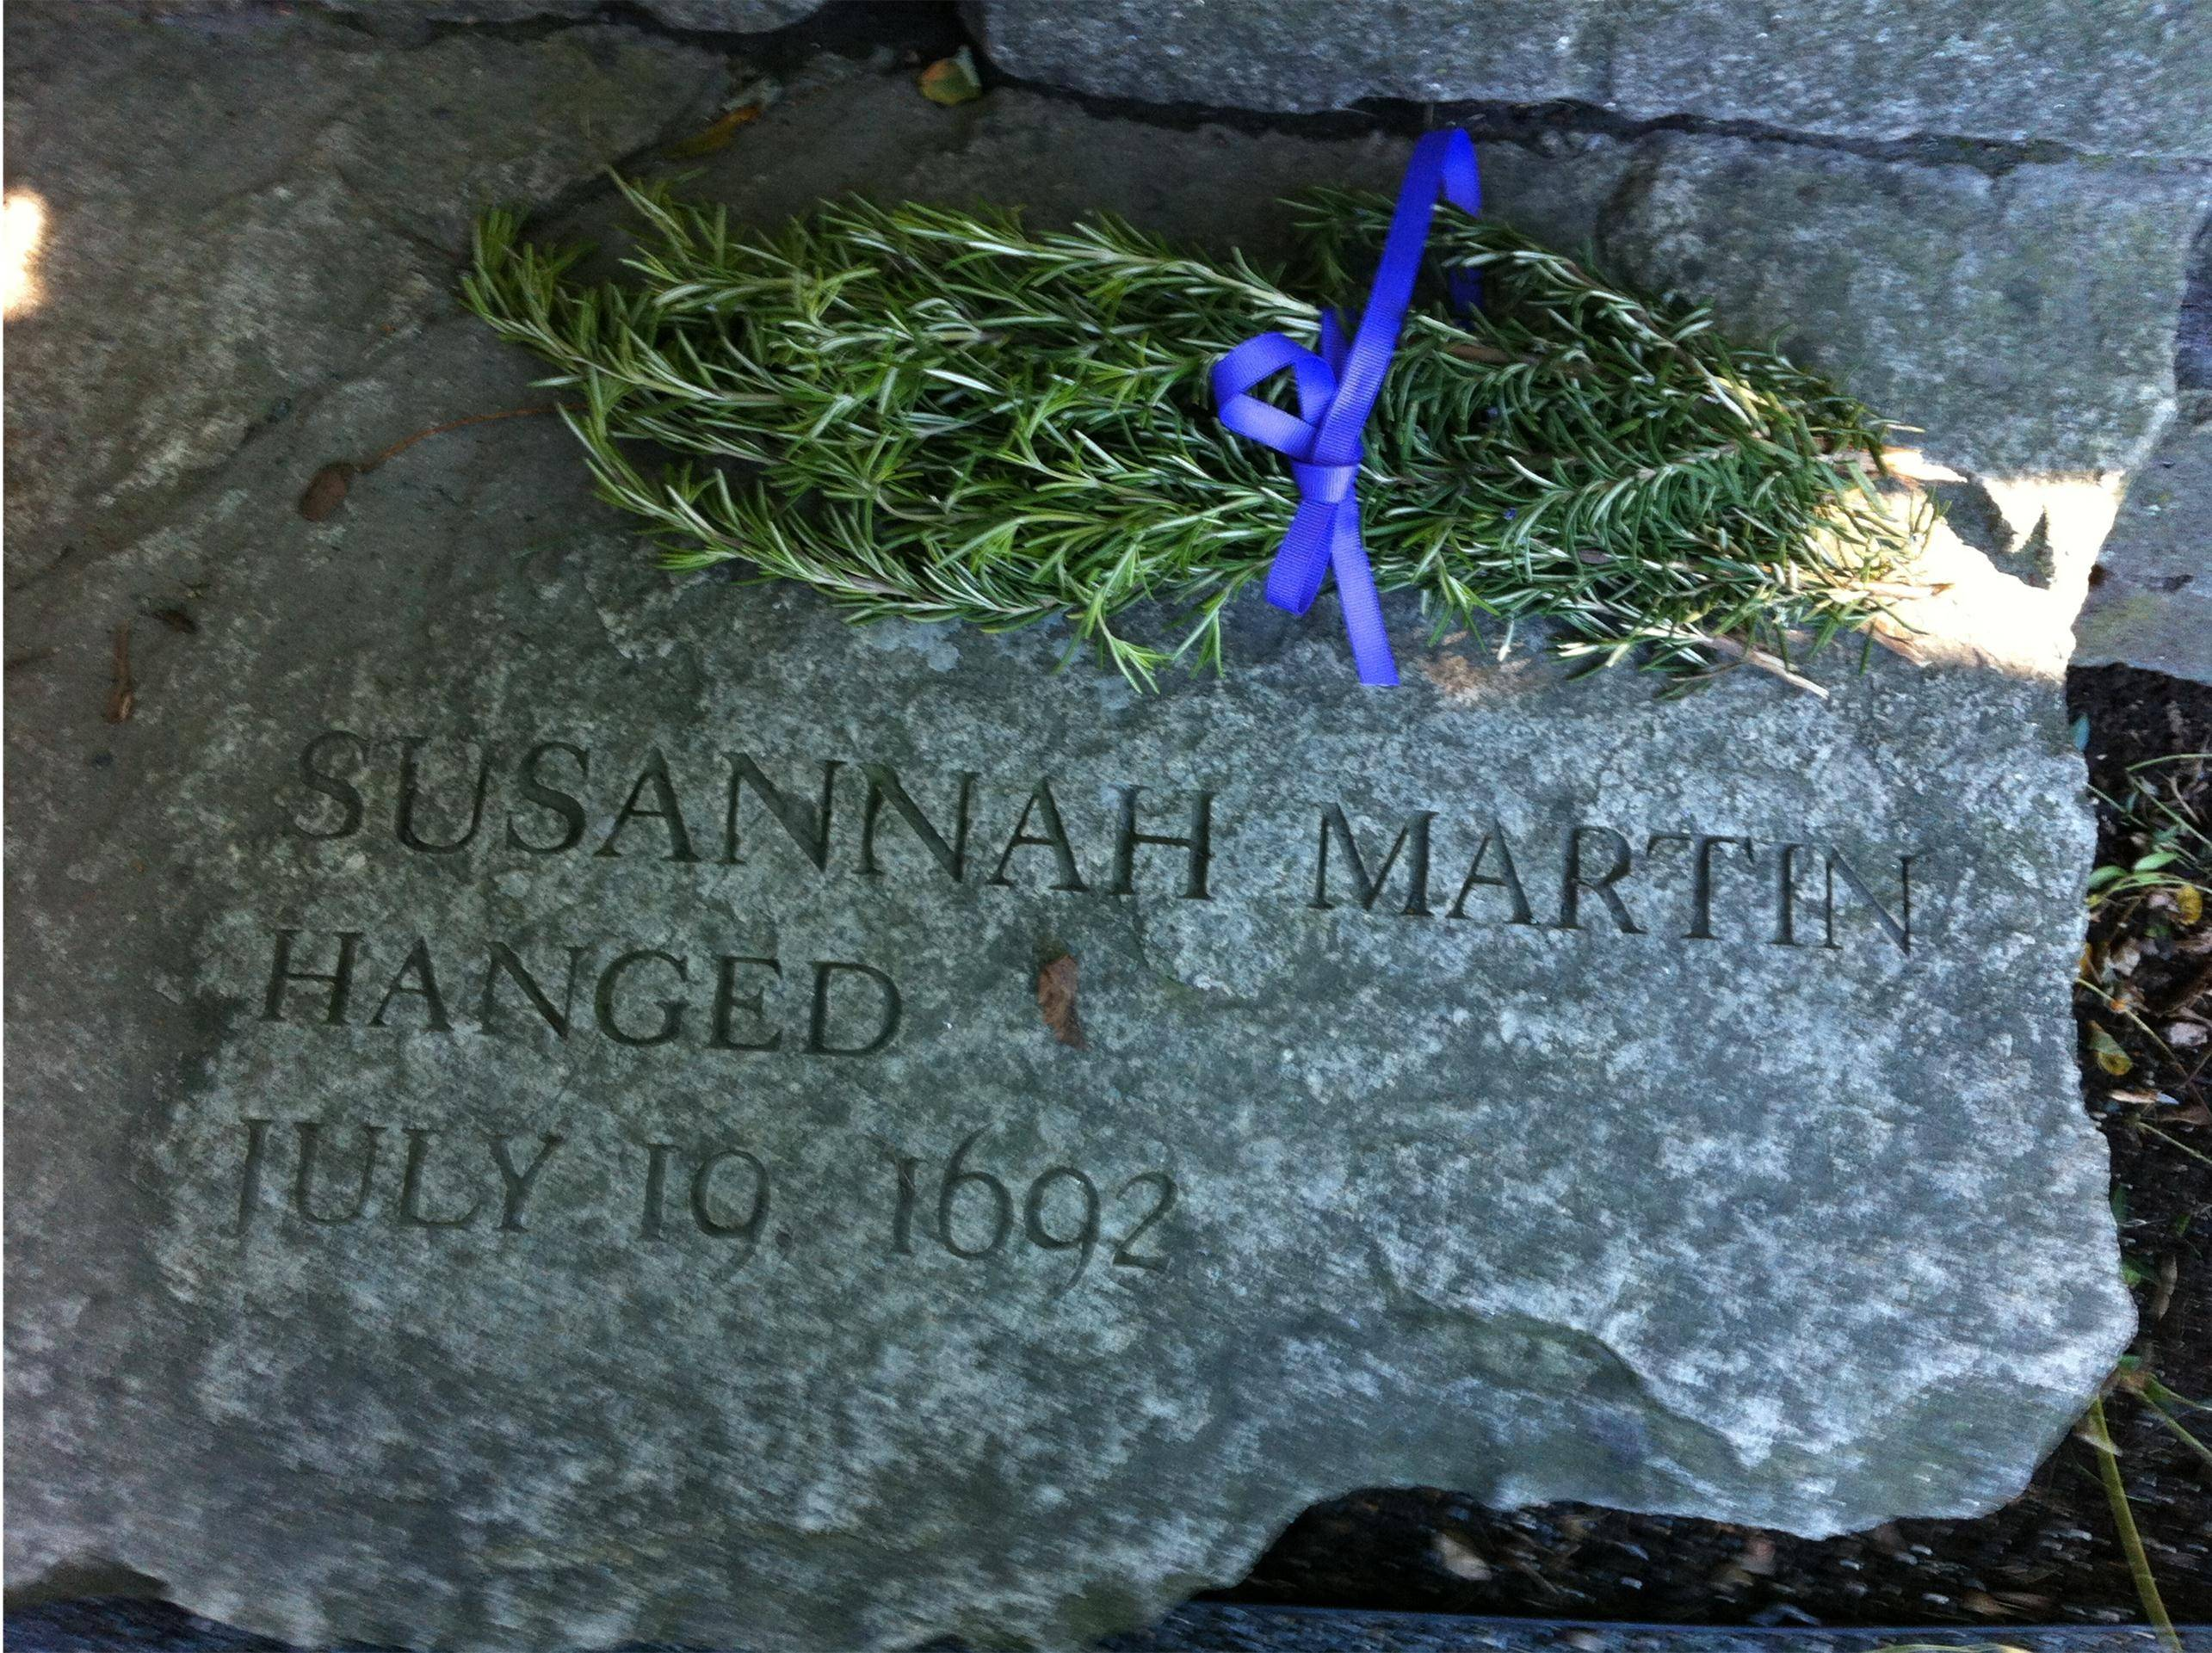 A sprig of rosemary signifying remembrance lies on this bench in Salem, Mass., in memory of Susannah Martin. The woman's great-great-great-great-great-great-great-great-granddaughter Shari Worrell, of Lake Barrington, helped win exoneration and a Christian funeral for Martin and other women executed as witches.